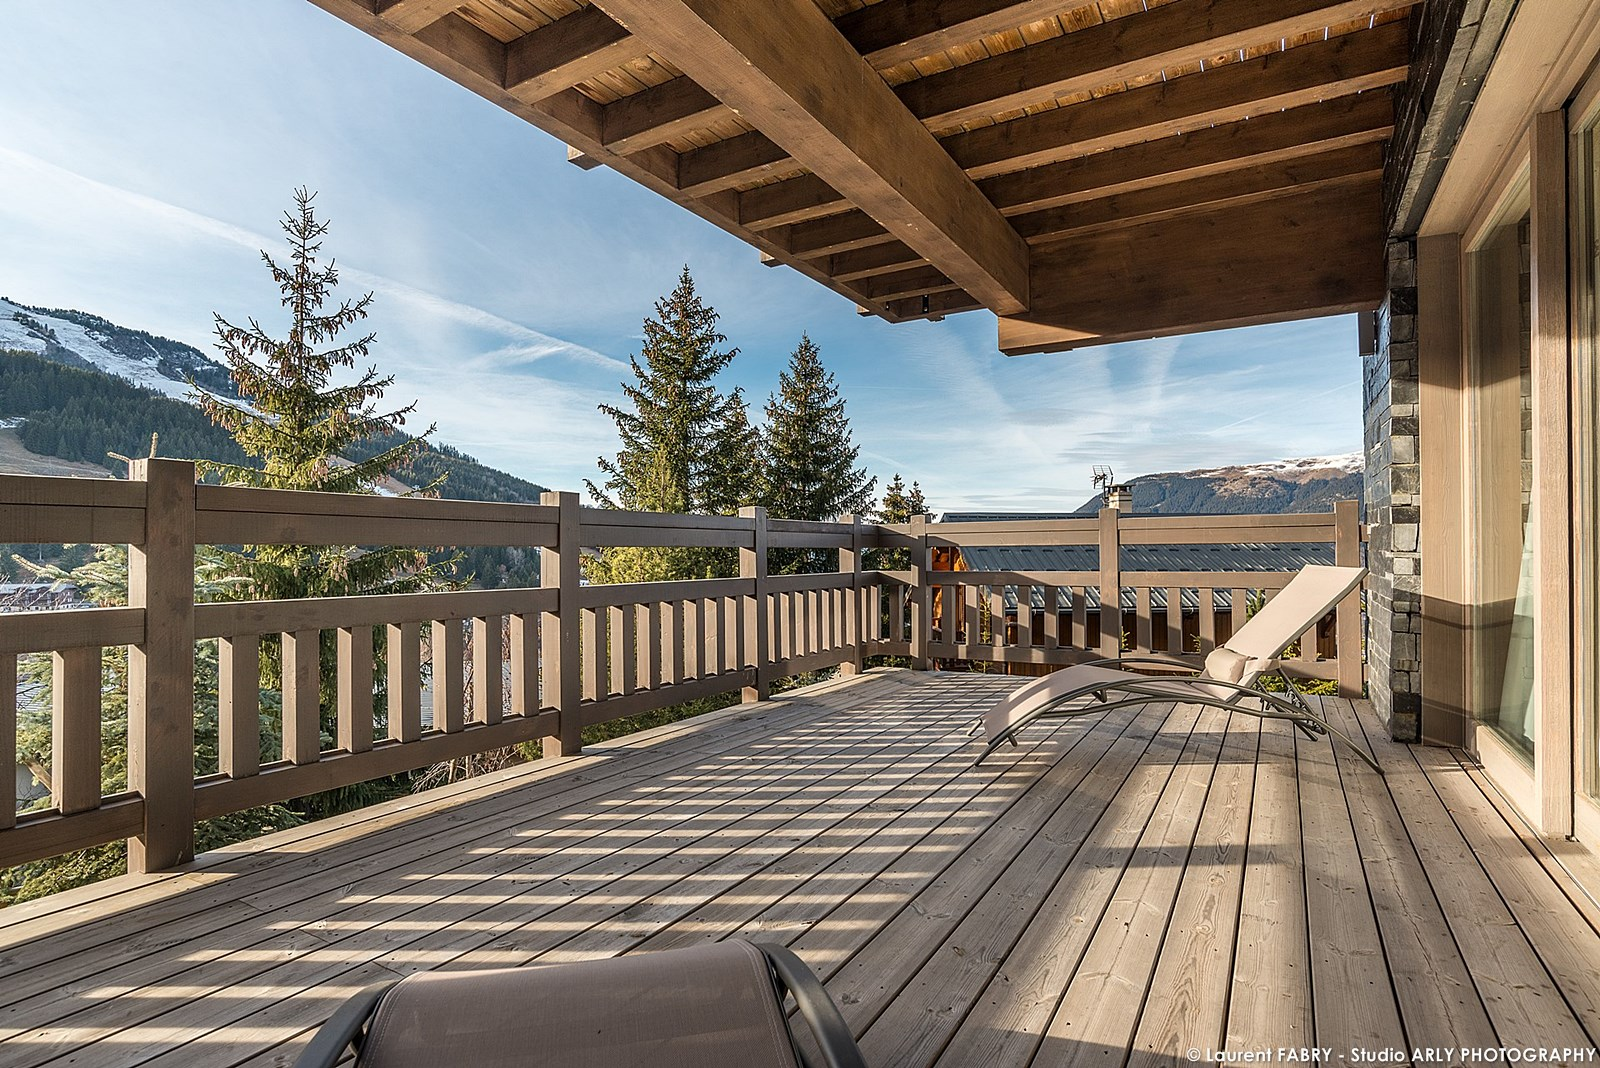 Photographe Hôtellerie à Courchevel : Immense Terrasse Du Chalet De Luxe